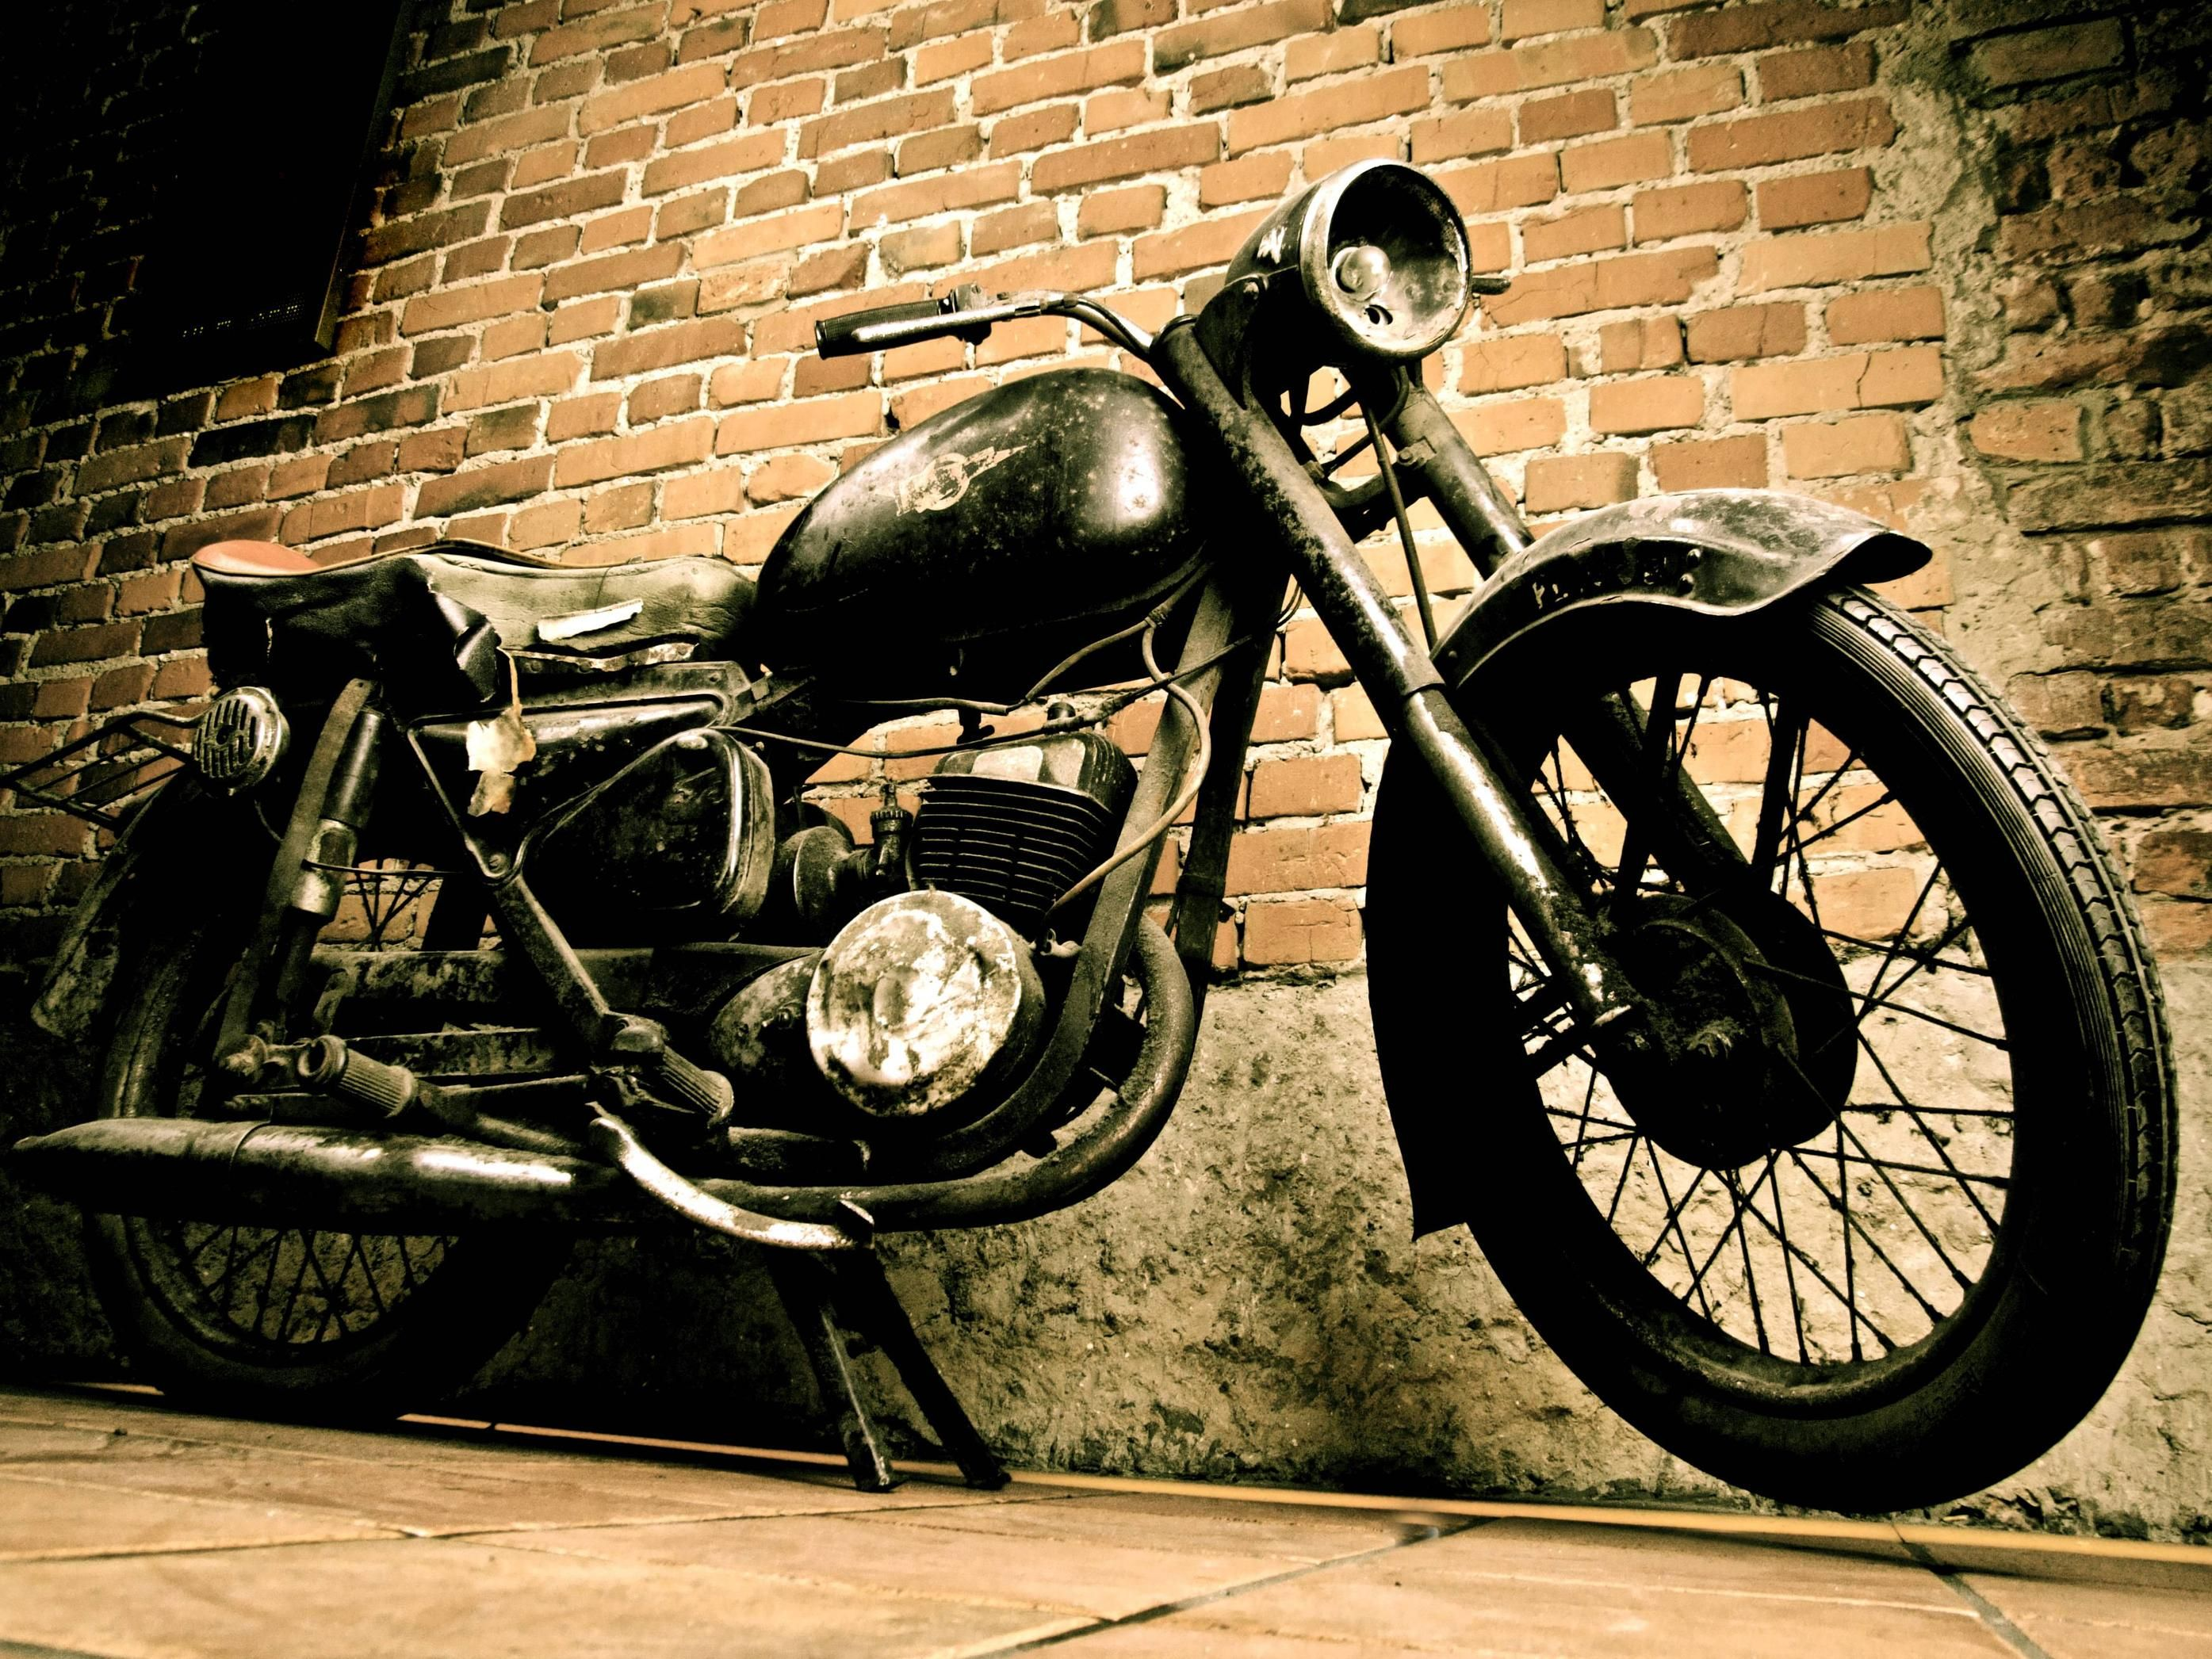 Vintage Motorcycle Pictures Old Motorcycles Motorcycle Pictures Bmw Vintage